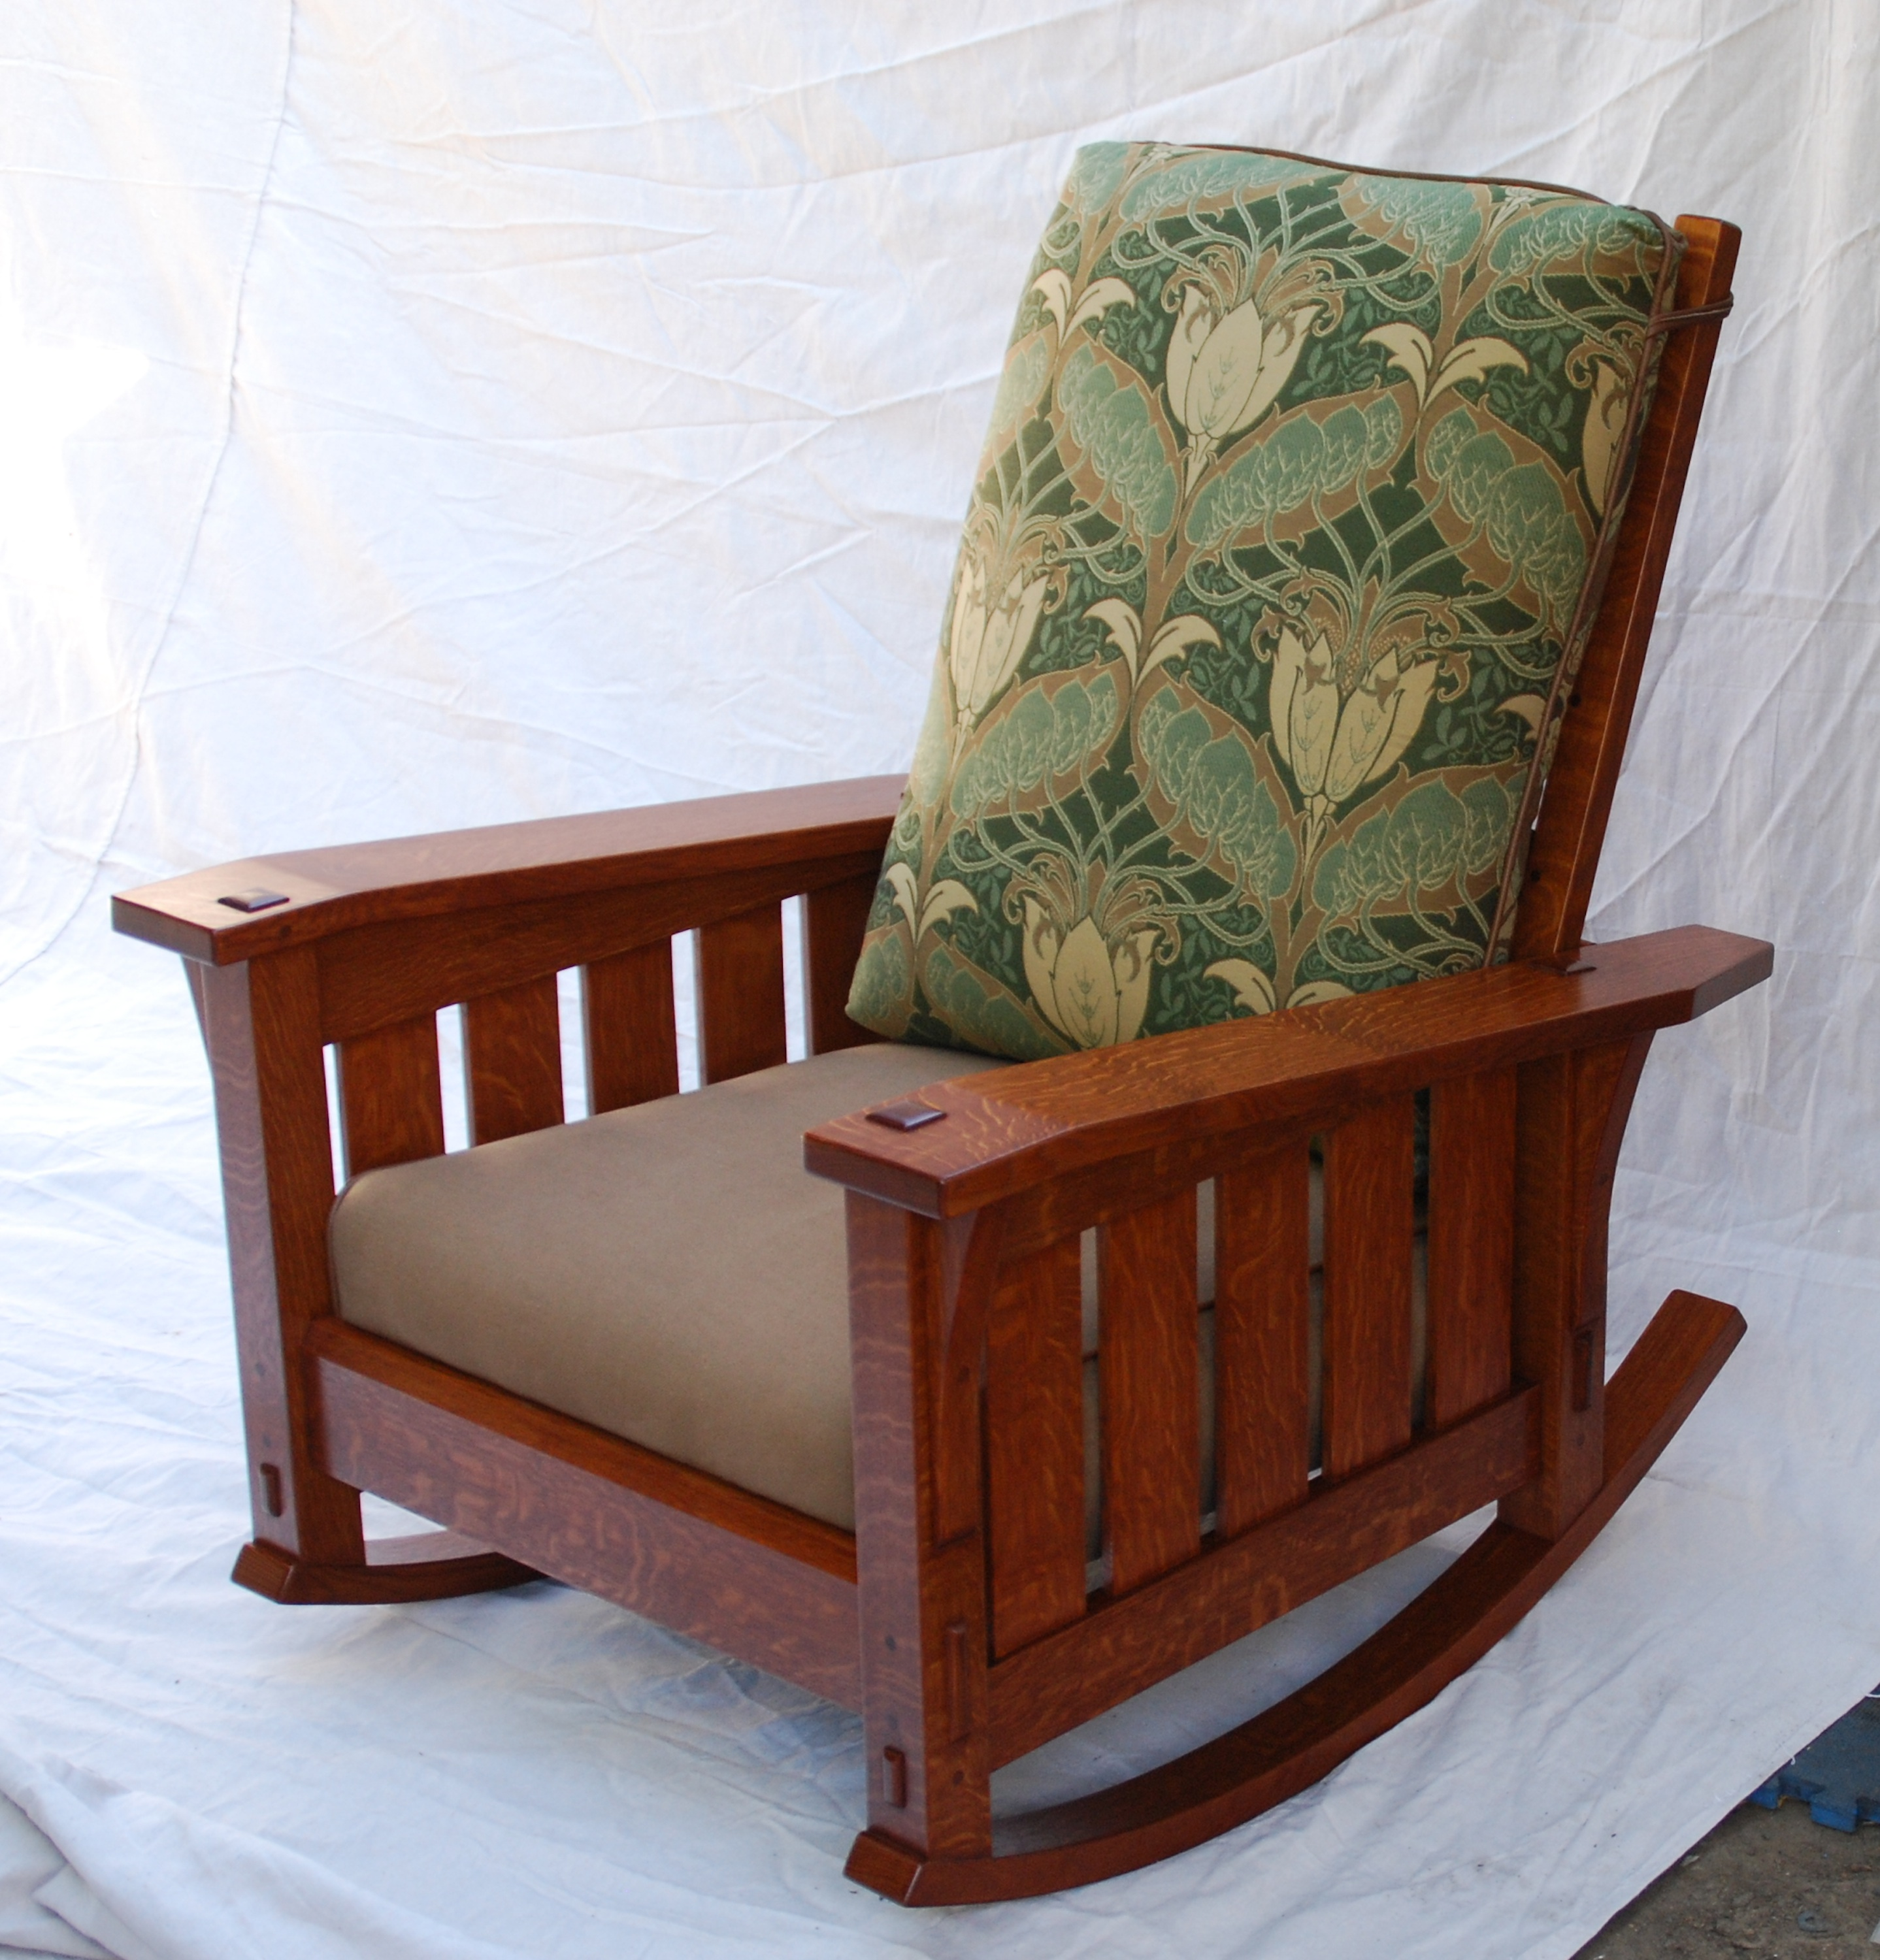 arm overstock tan multi free today product garden madison shipping bent recliner brydon park home